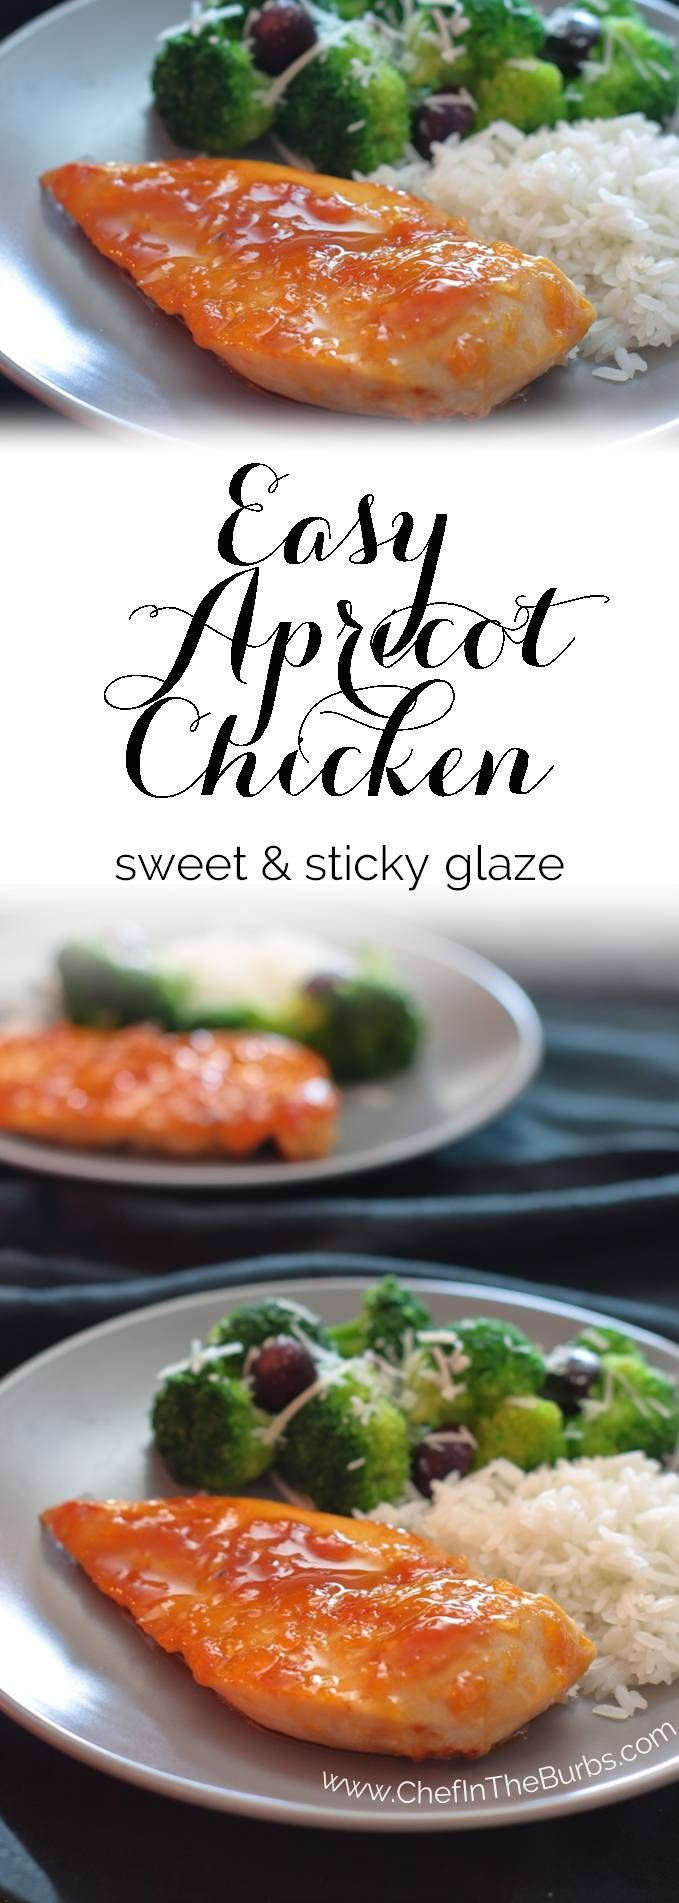 Easy Apricot Chicken - This tender chicken with its sweet and tangy glaze that is a family favorite that fast and easy enough for weeknights.